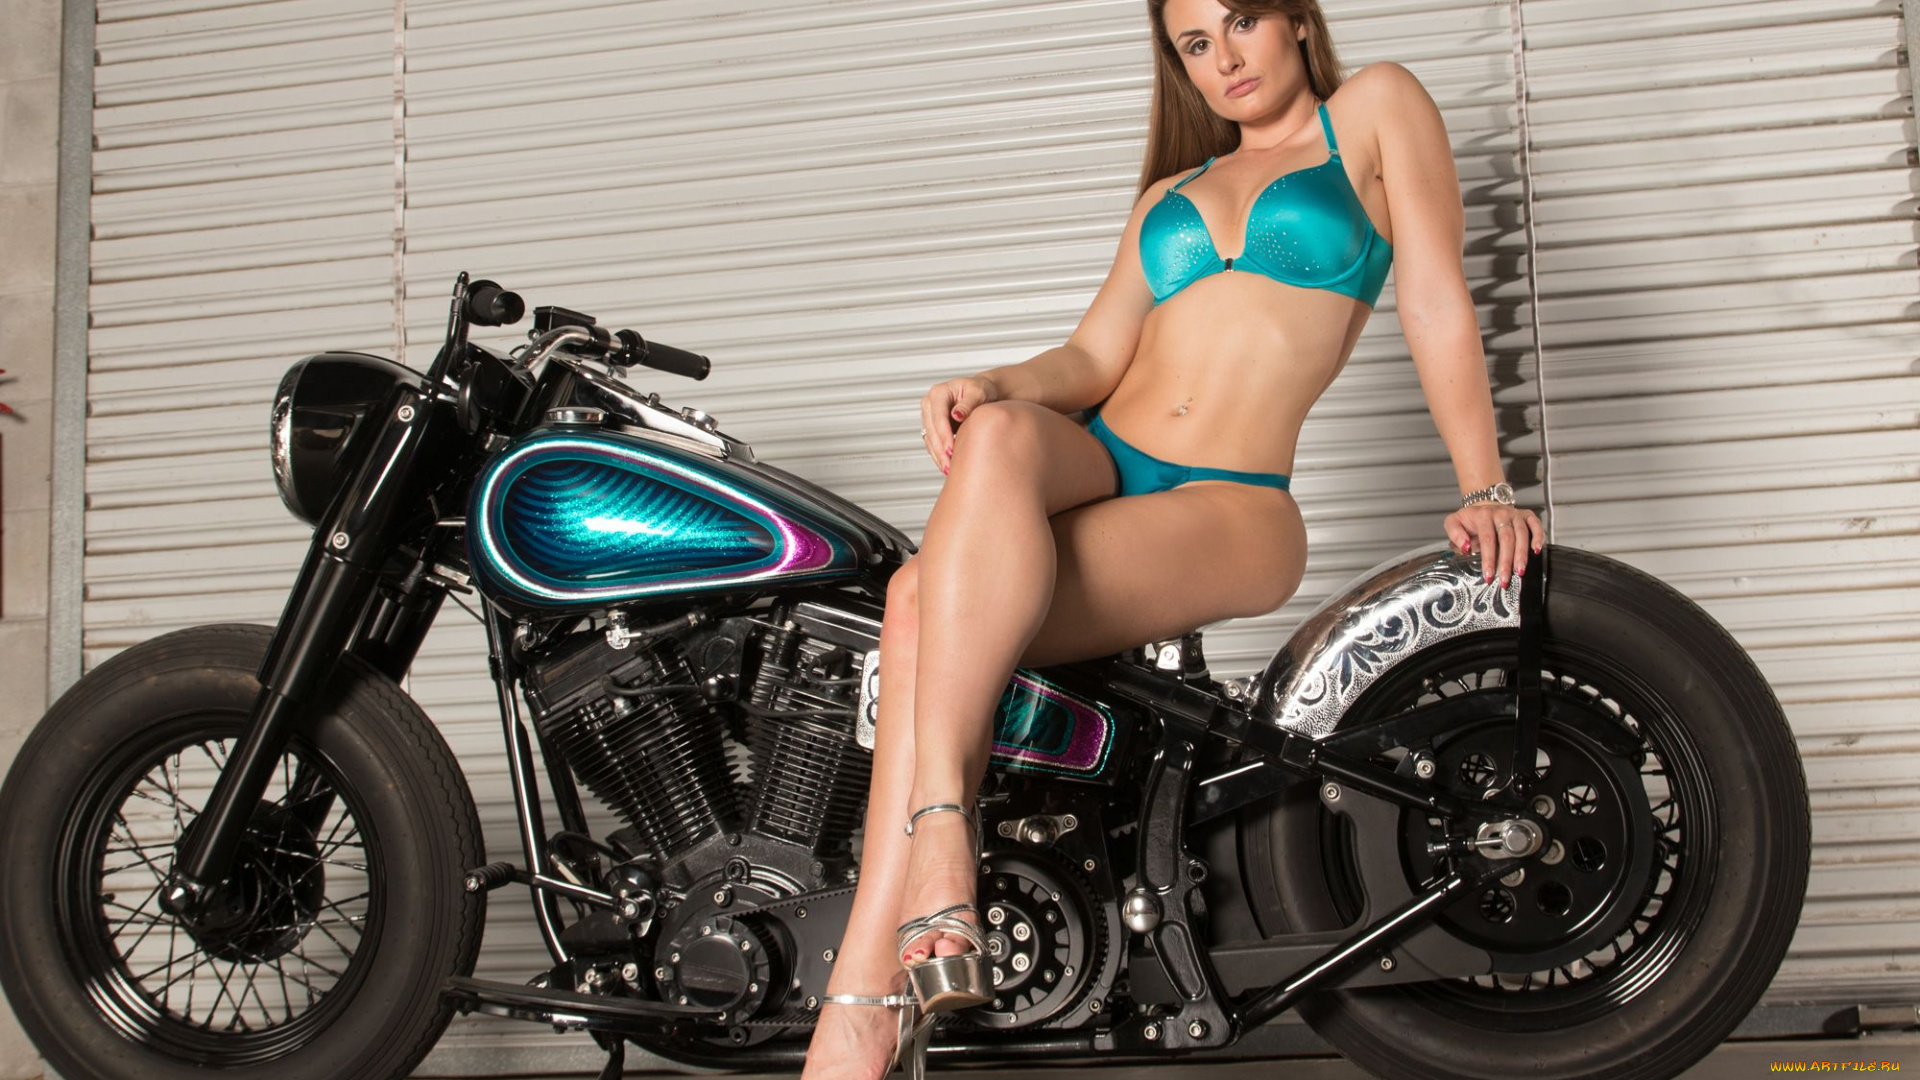 petite-naked-girl-on-motorcycle-fucking-sexual-action-male-and-female